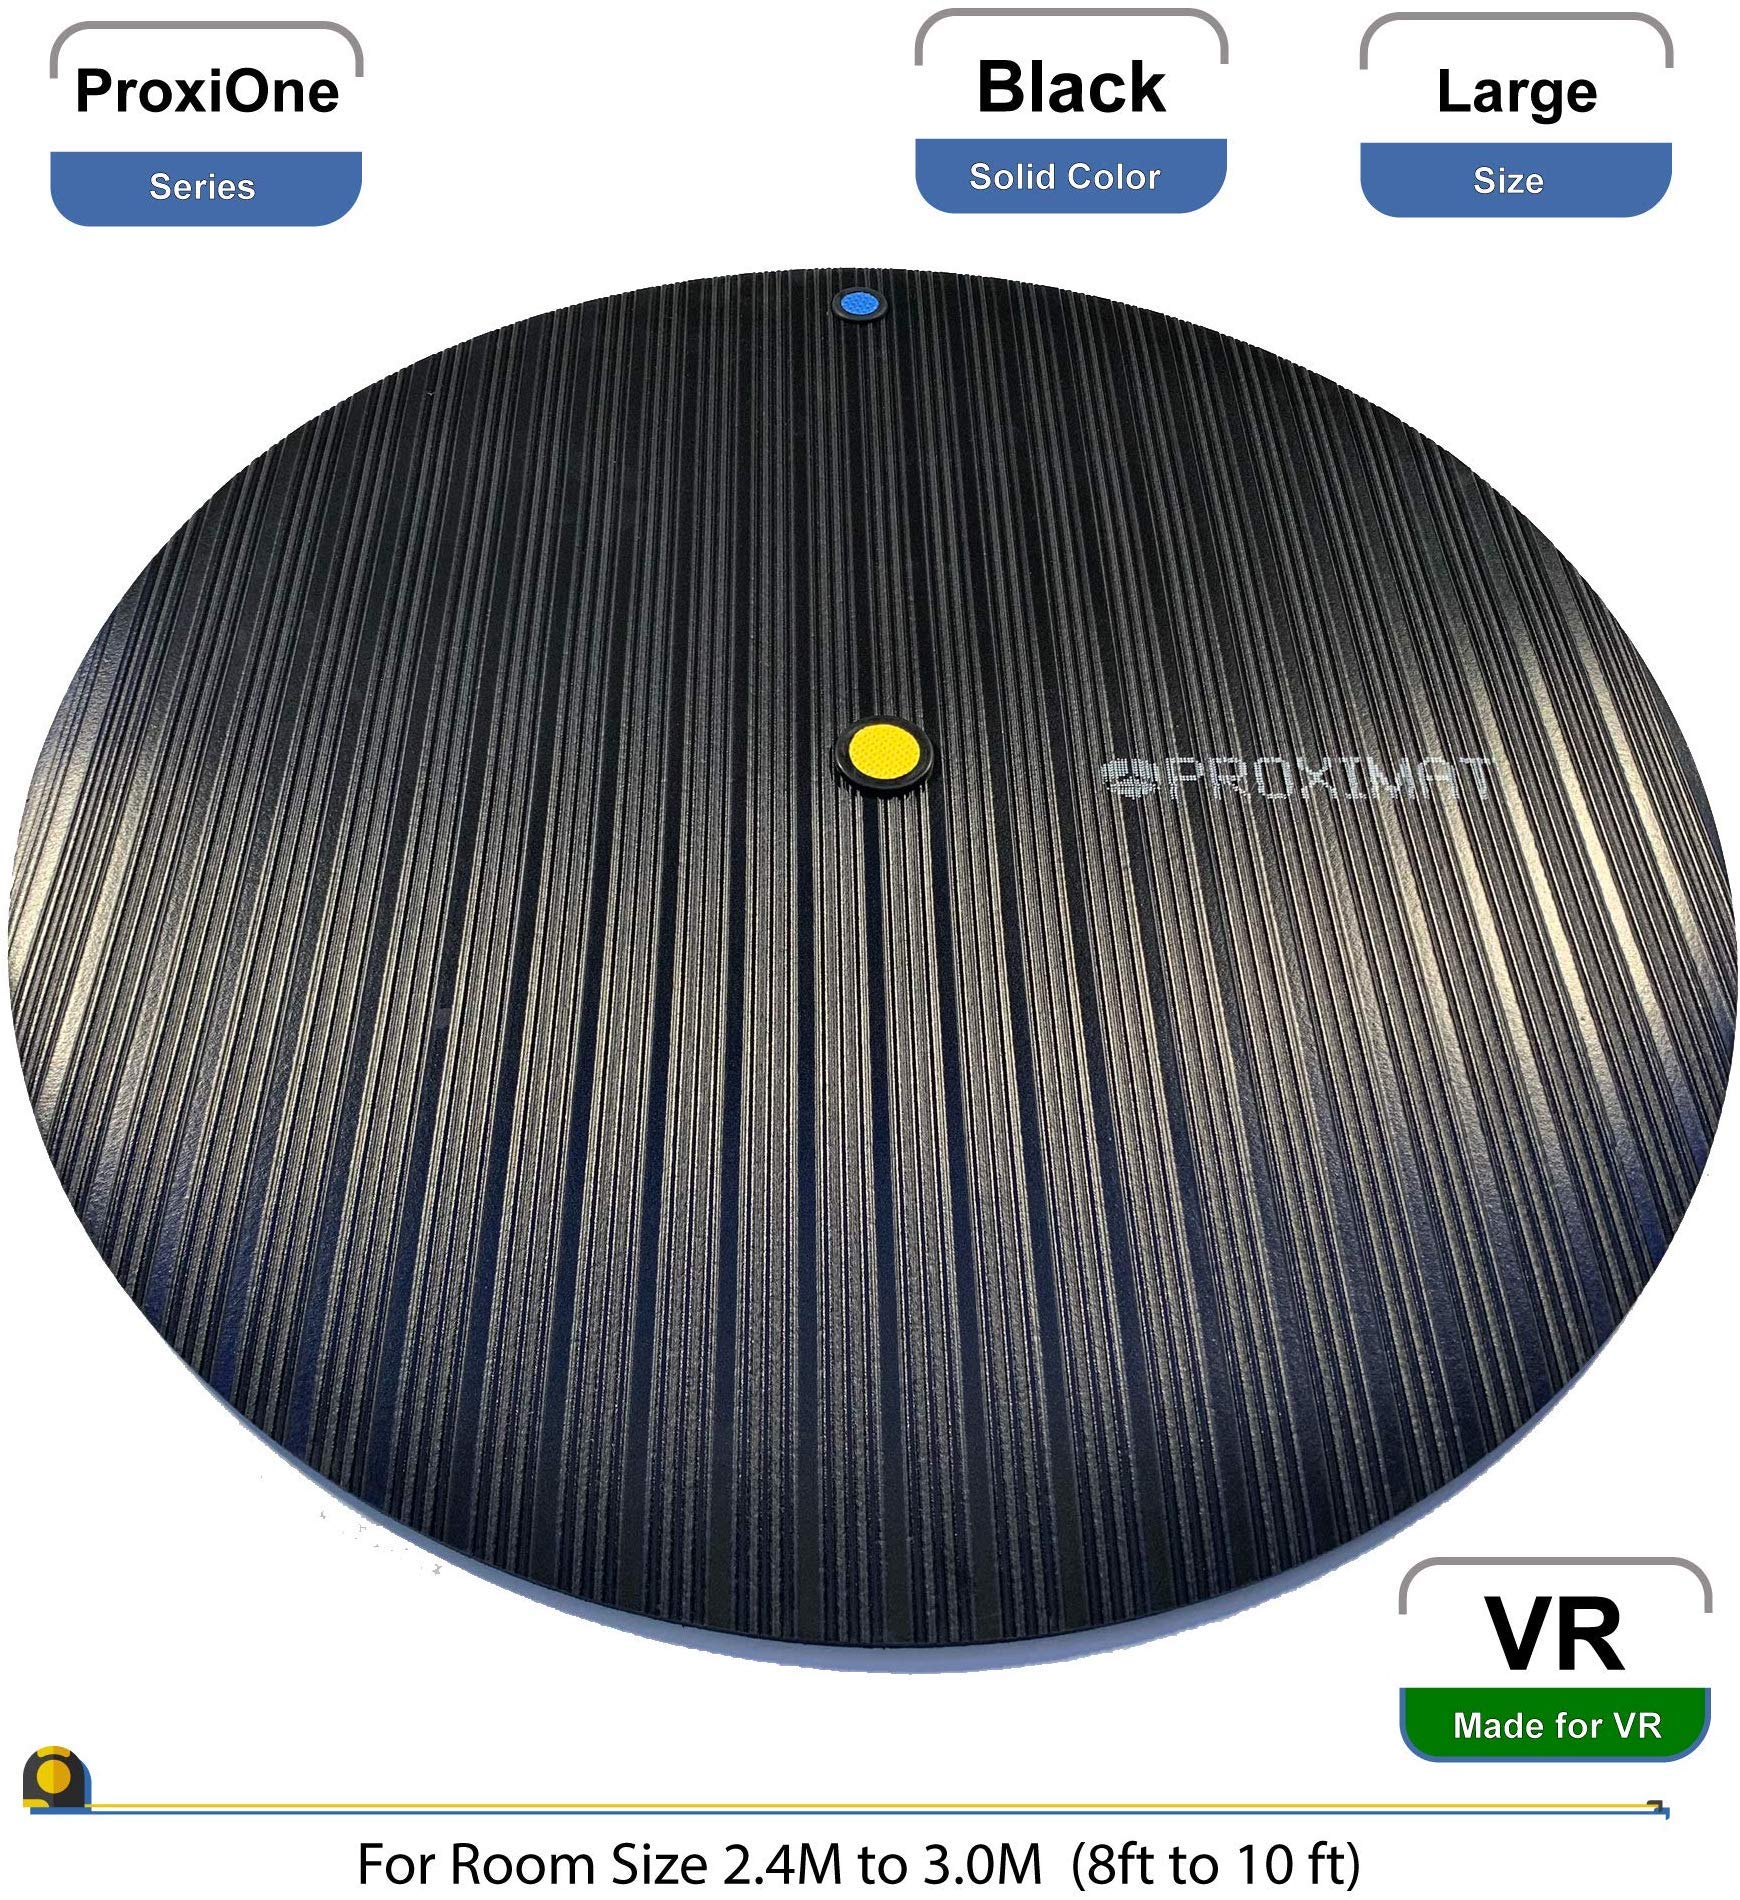 ProxiMat | ProxiOne | Black | Large | VR Virtual Reality Chaperone Safety Mat | 8' to 10' Room Scale | For HTC Vive, Oculus Rift Quest, Playstation PSVR, Pimax 5K 8K, Valve Index Headset by Proximat